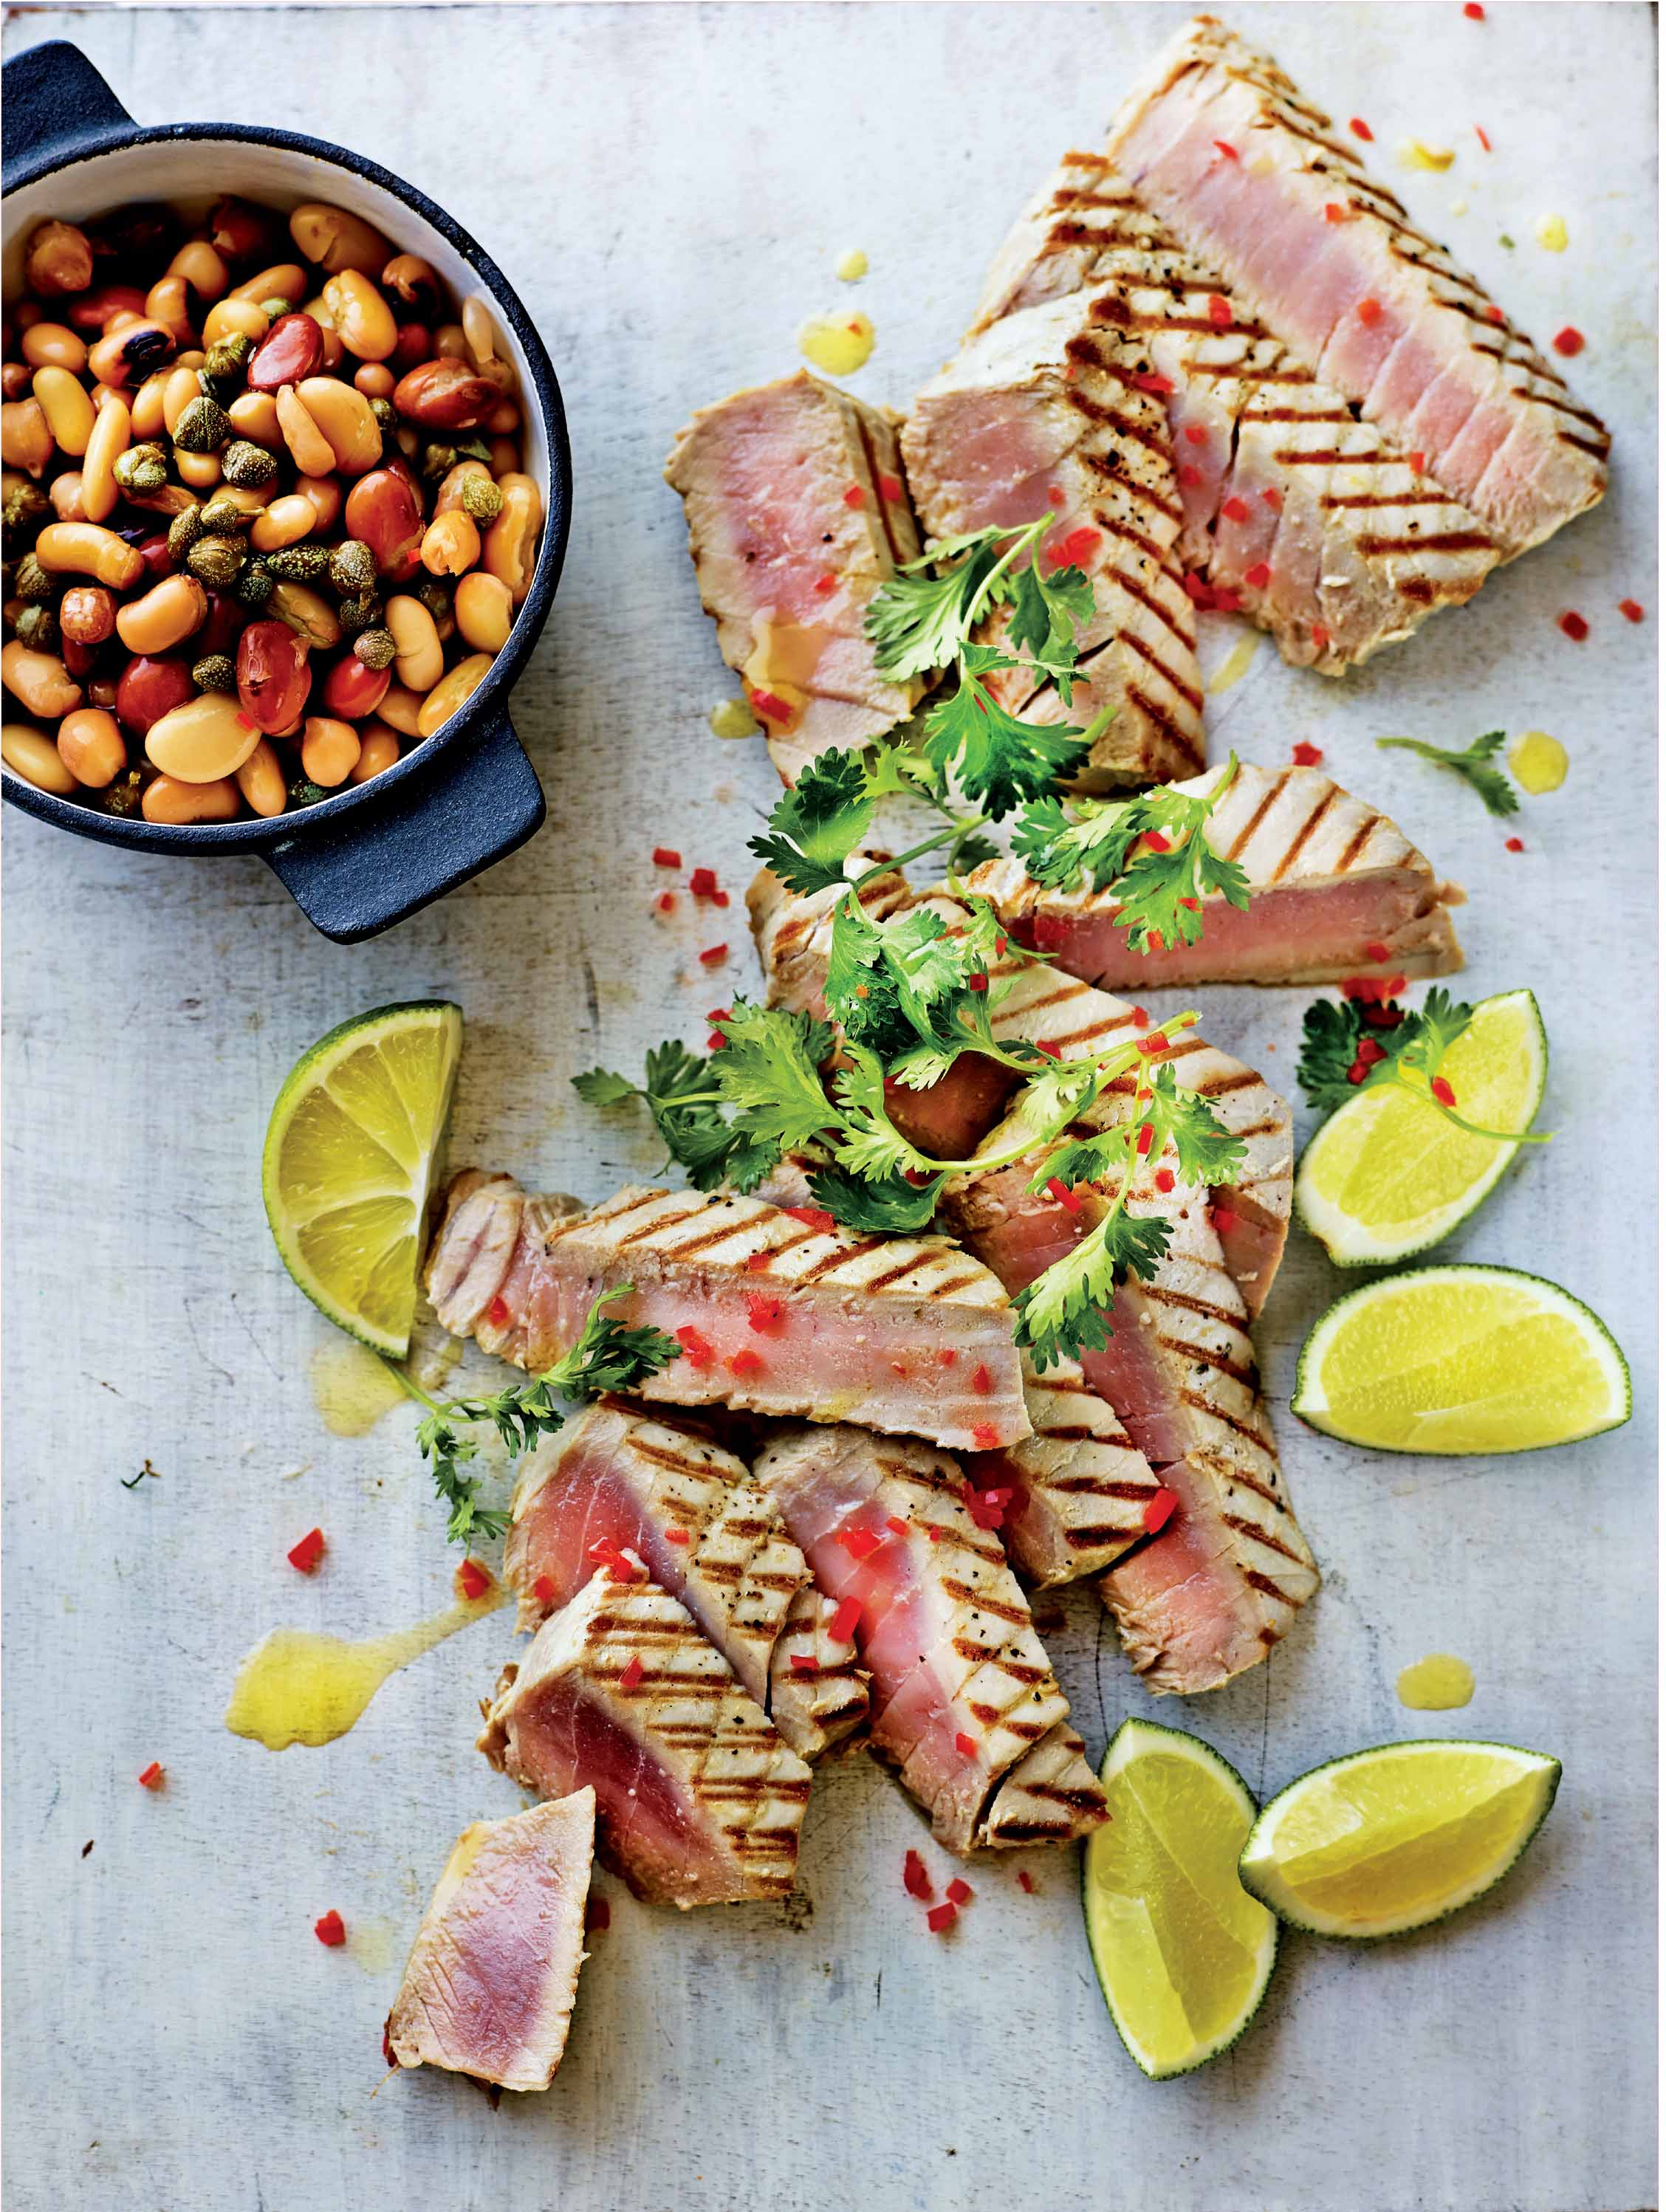 Tuna steak with herbed bean salad